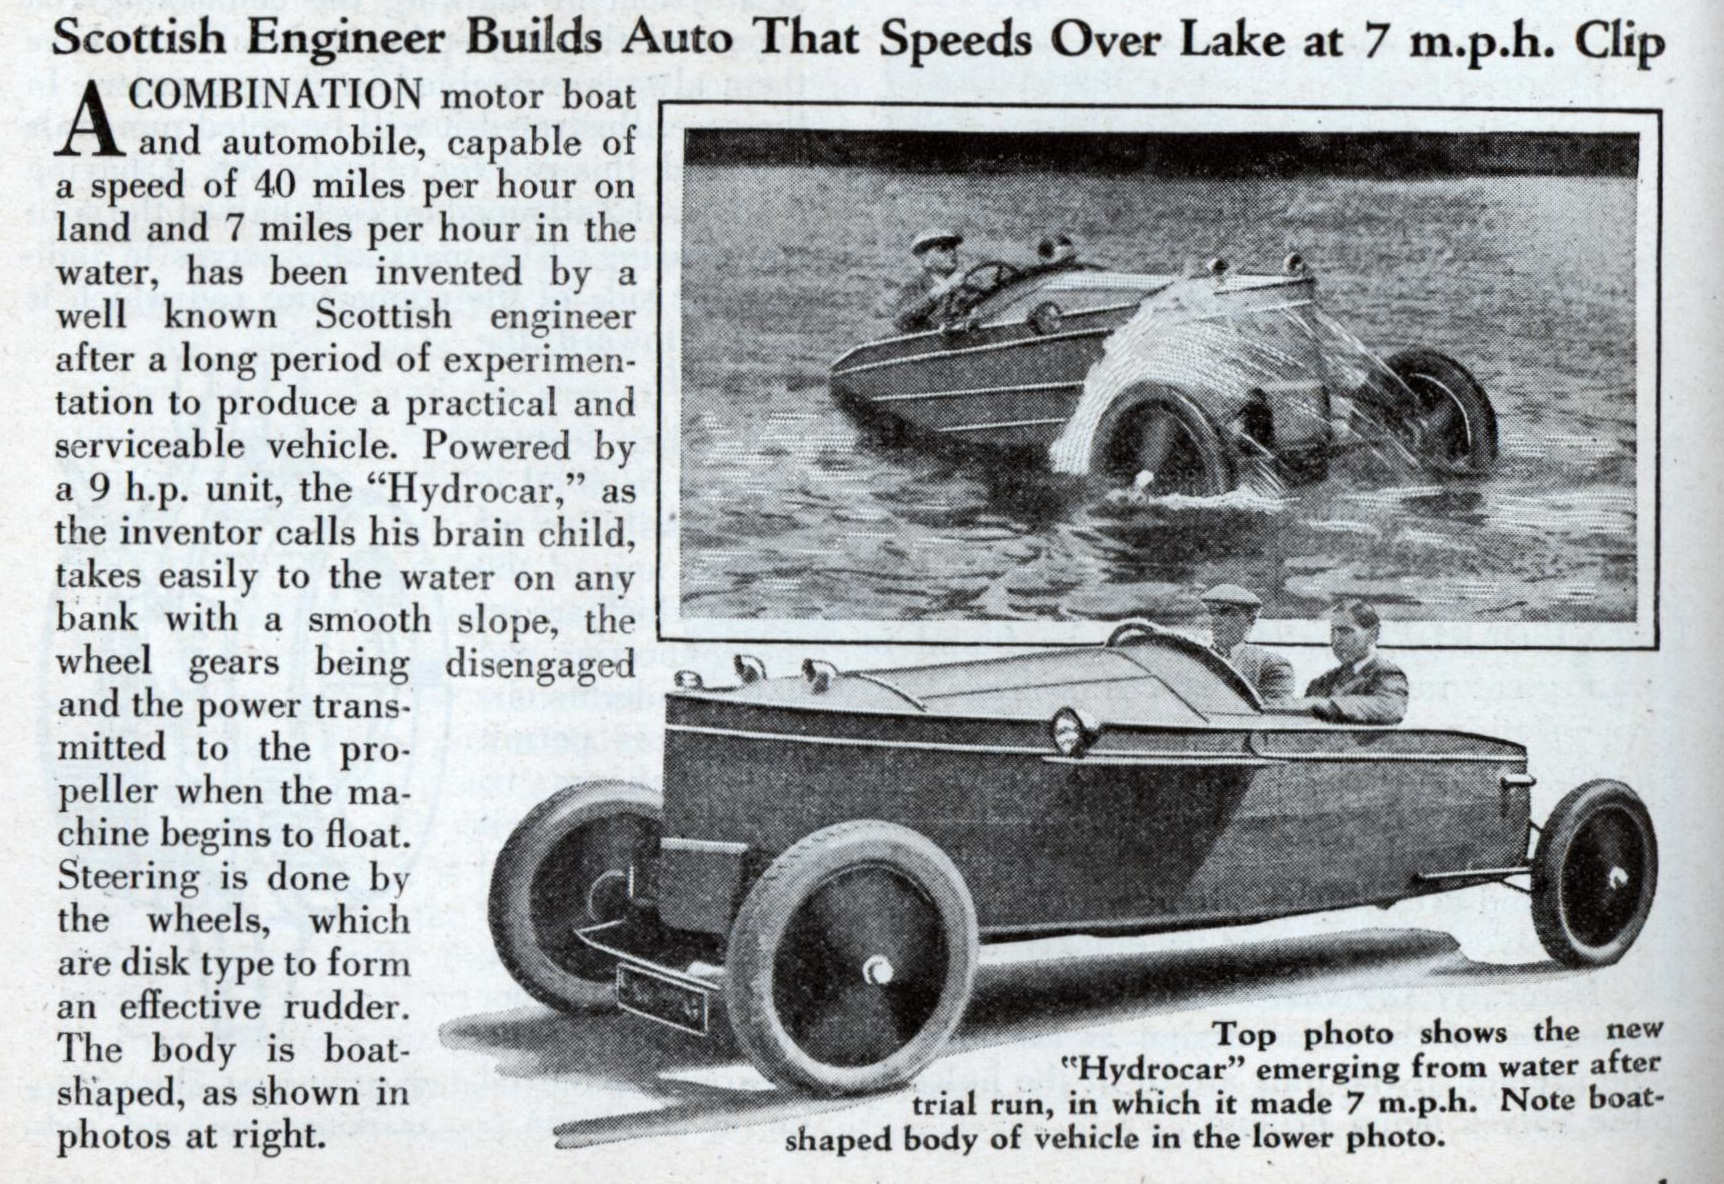 Scottish Engineer Builds Auto That Speeds Over Lake at 7 m.p.h. Clip ...